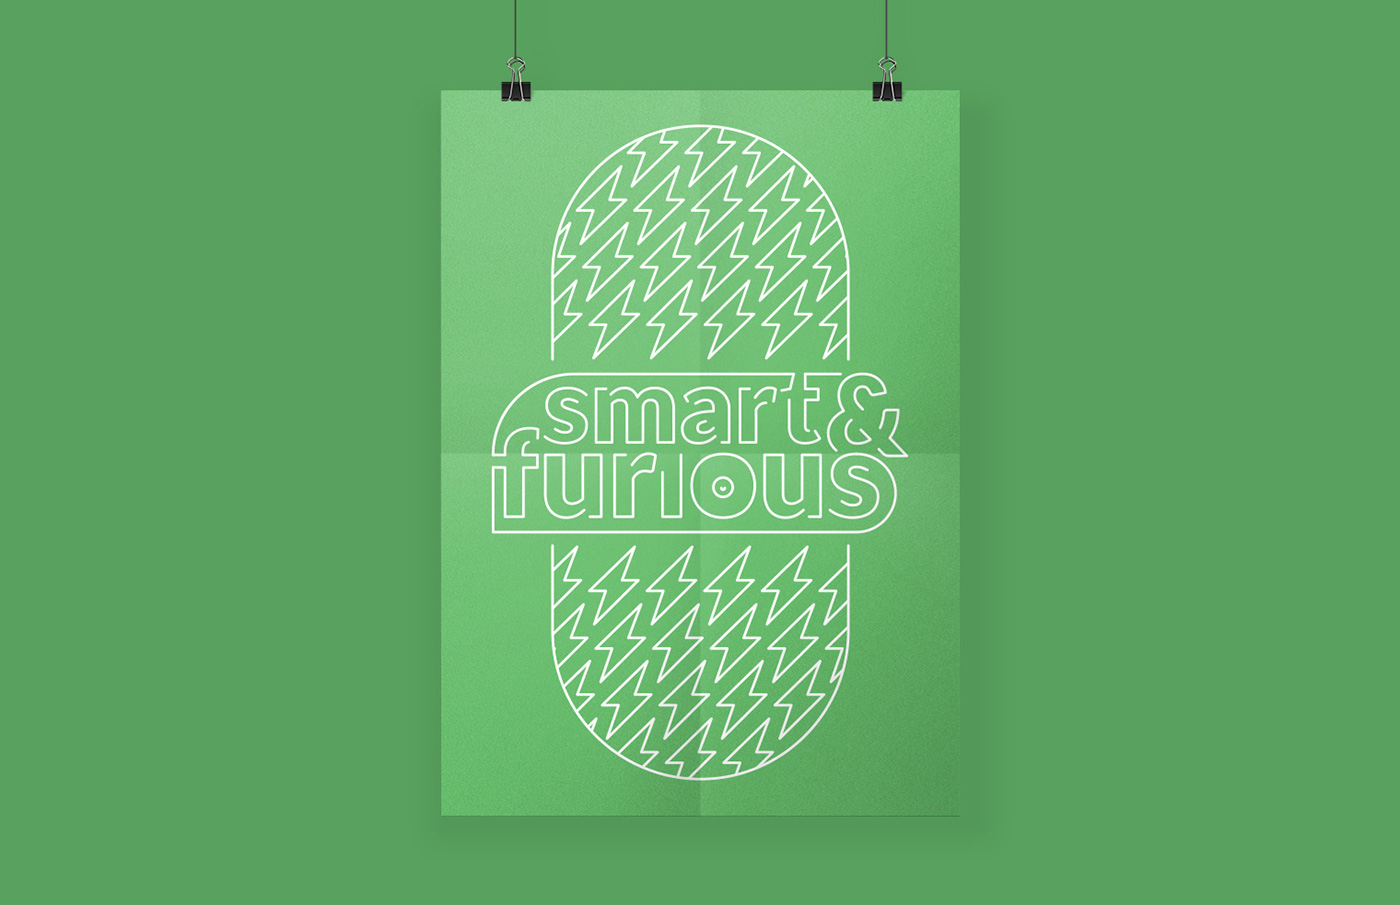 posters office poster Interactive Agency plakaty simple line Minimalism design